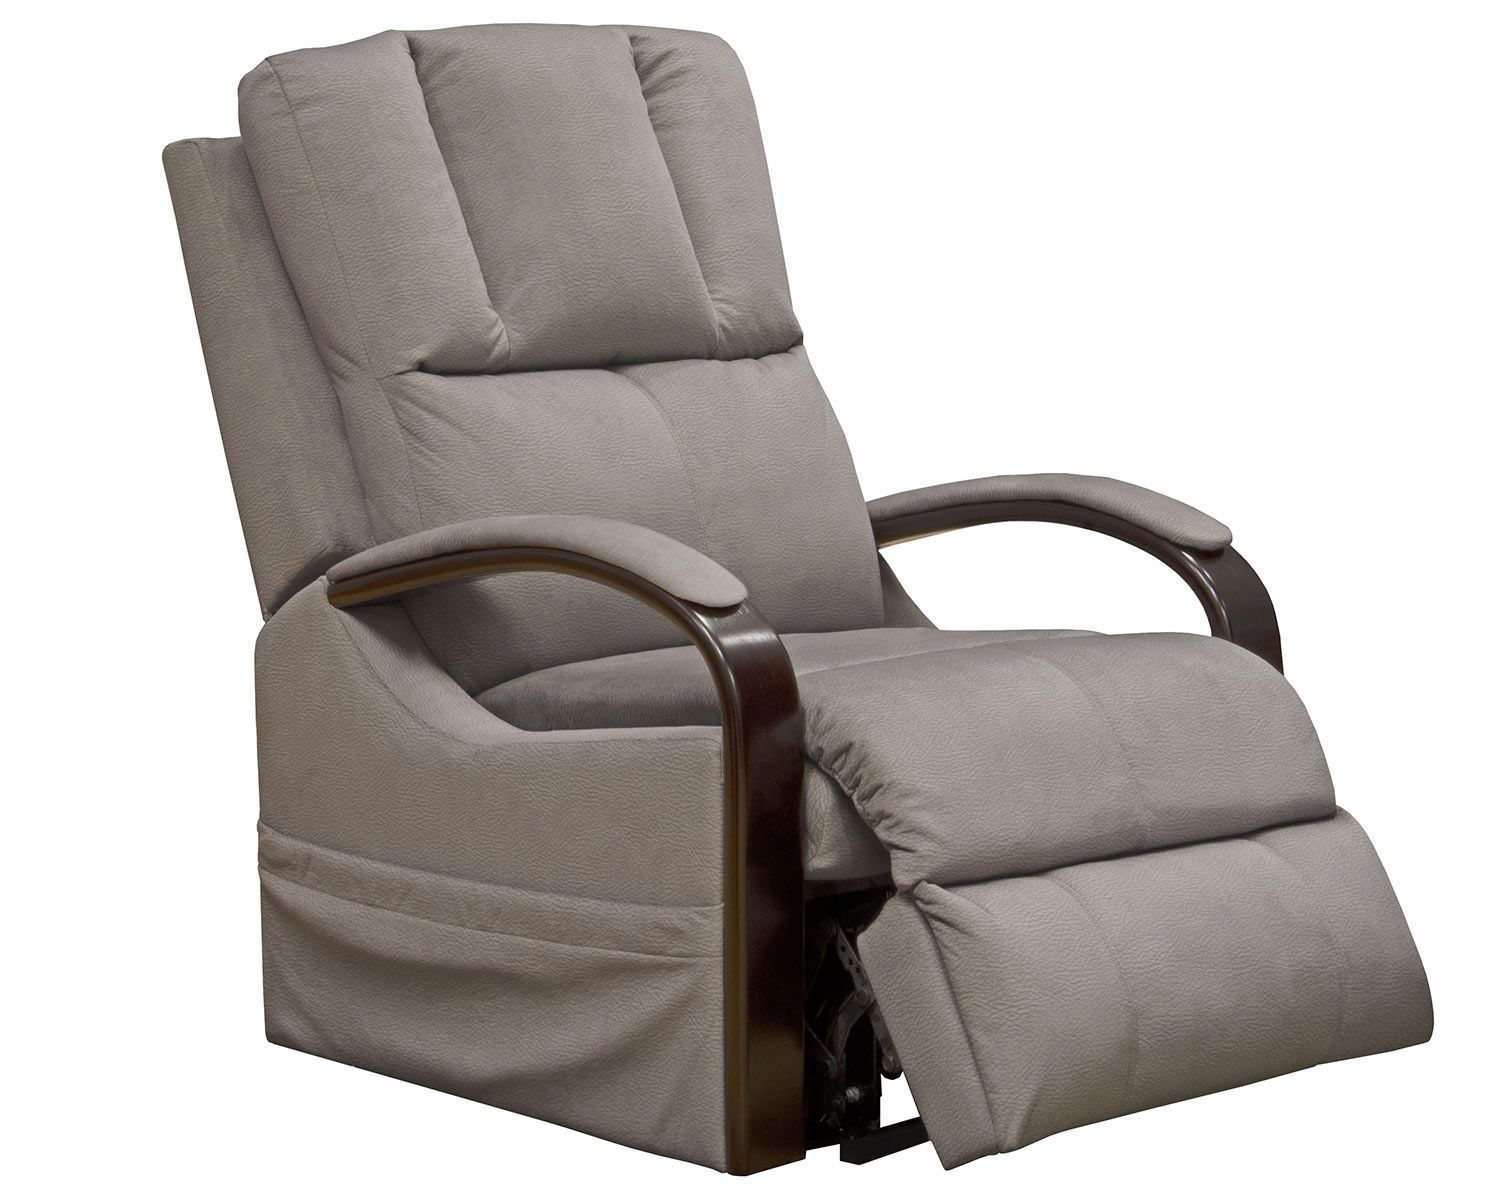 CatNapper Chandler Power Lift Recliner Chair - Aluminum